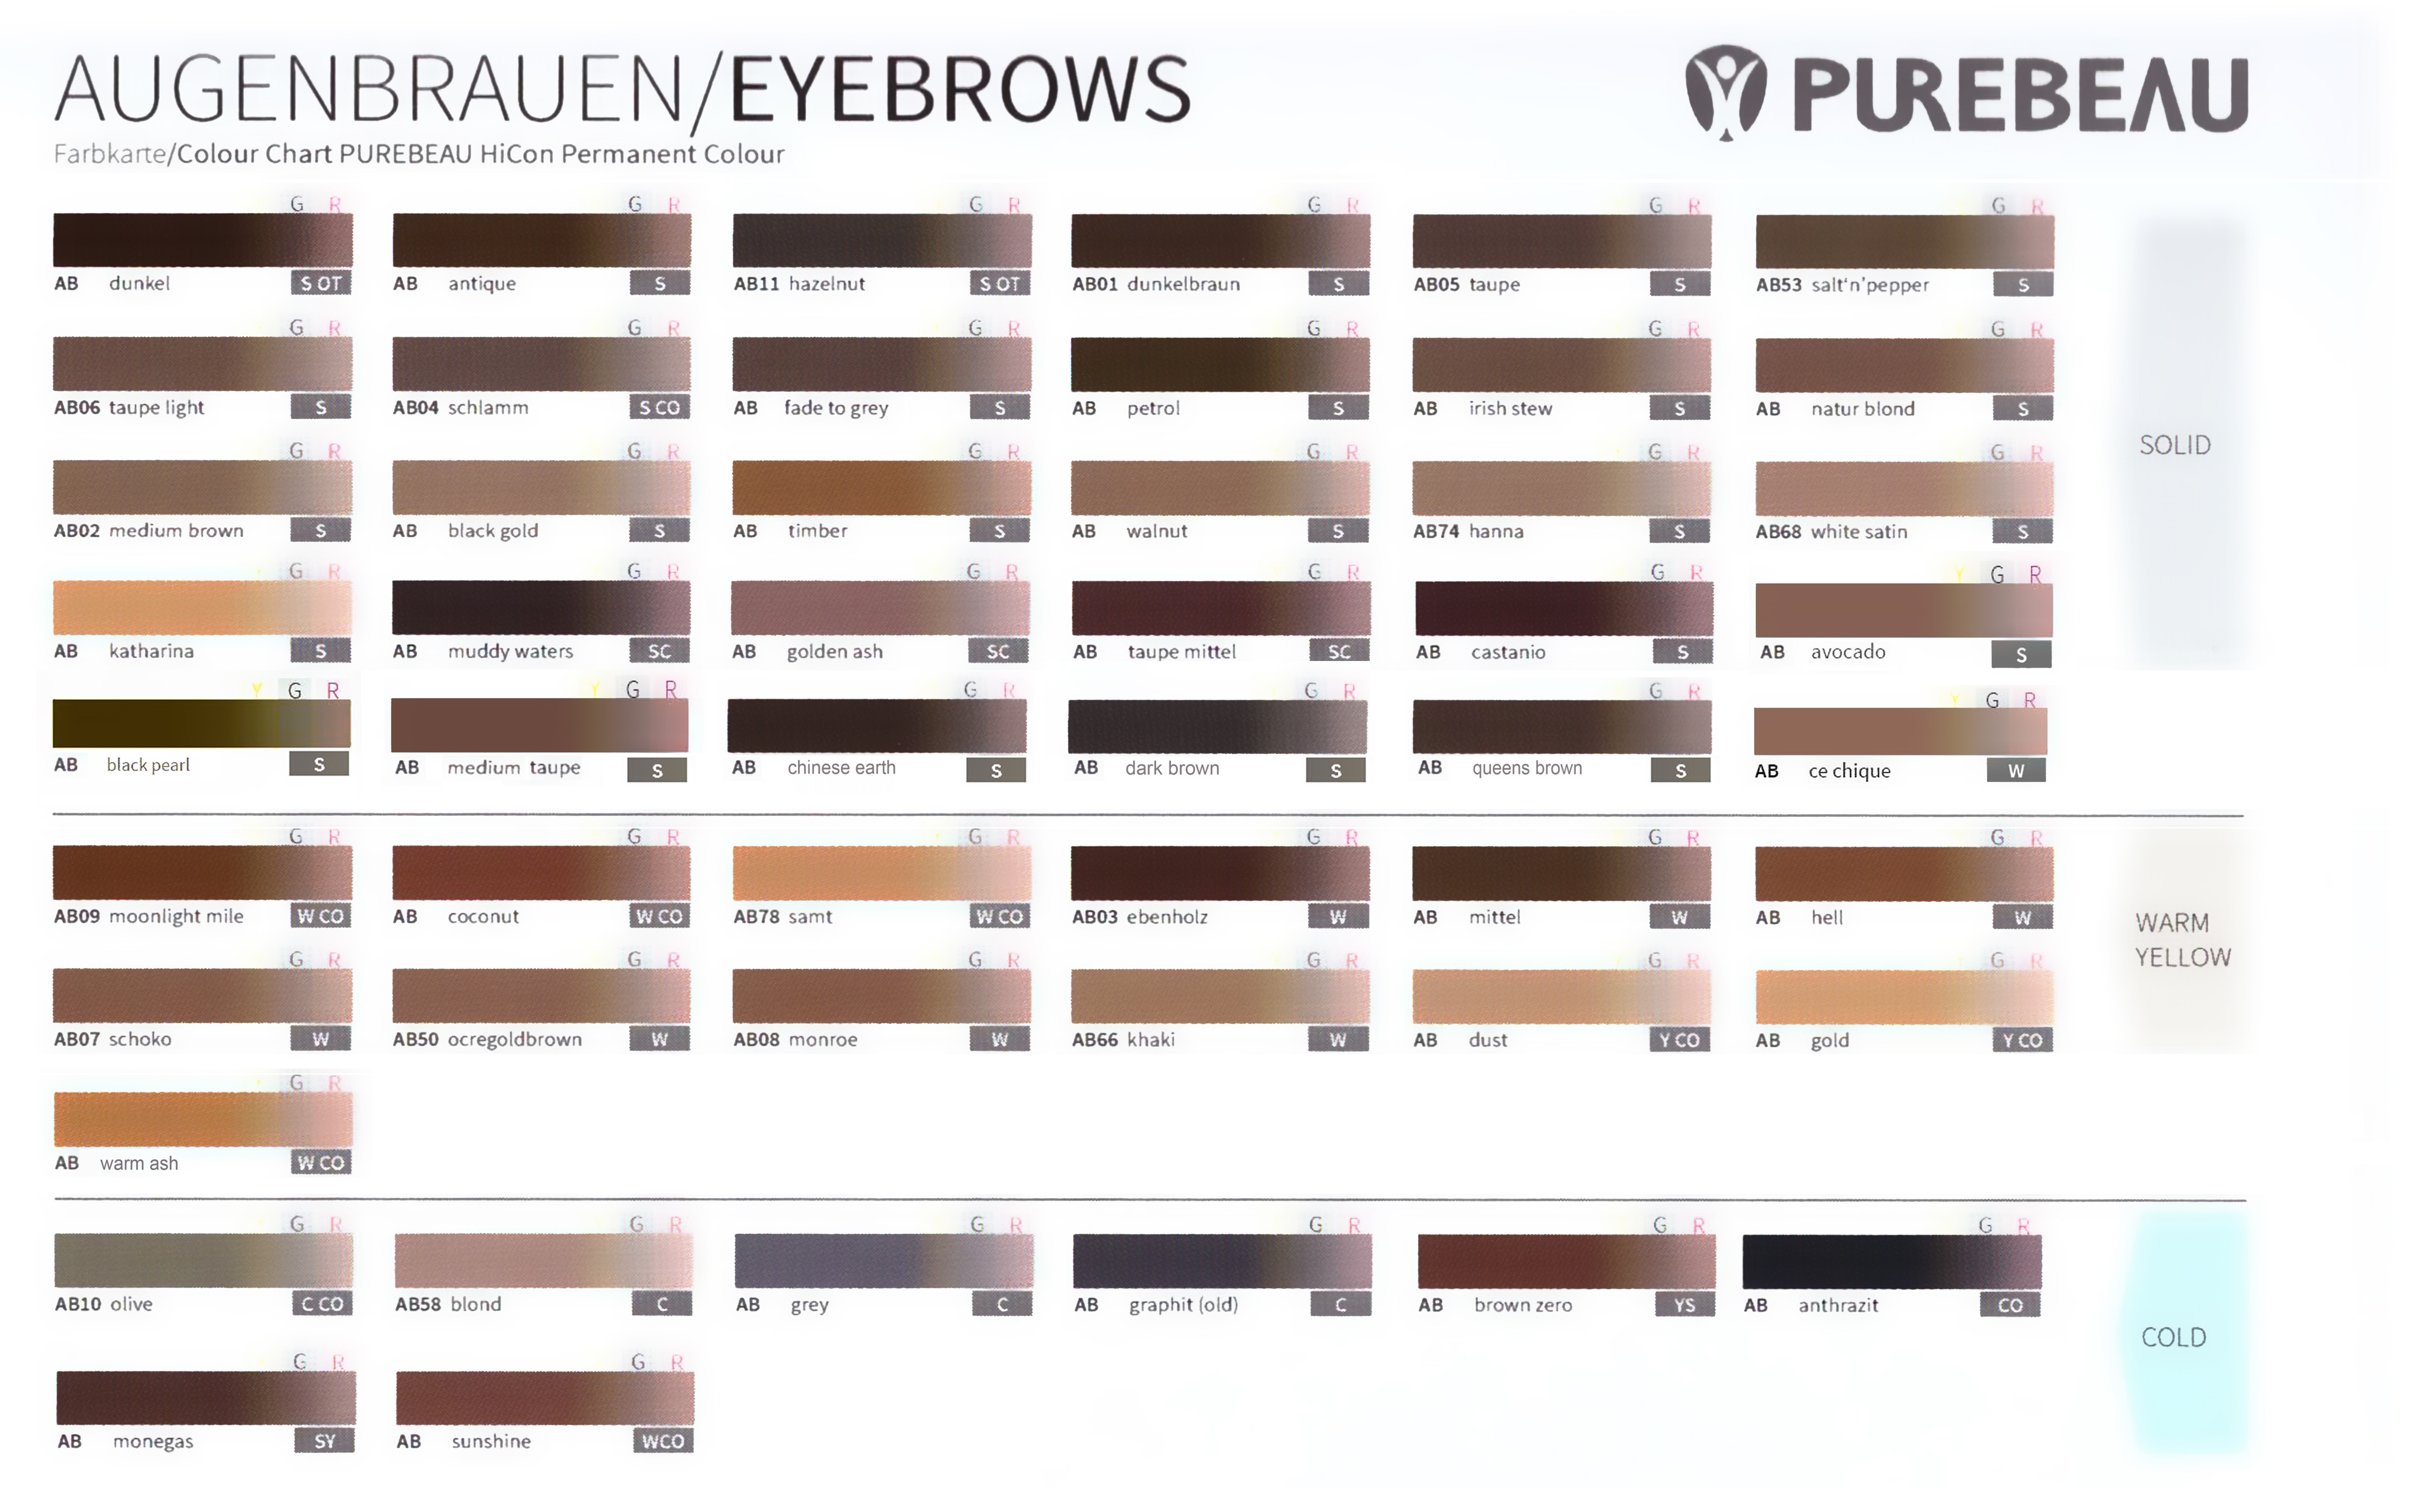 purebeau_eyebrow_pigment_color.jpg